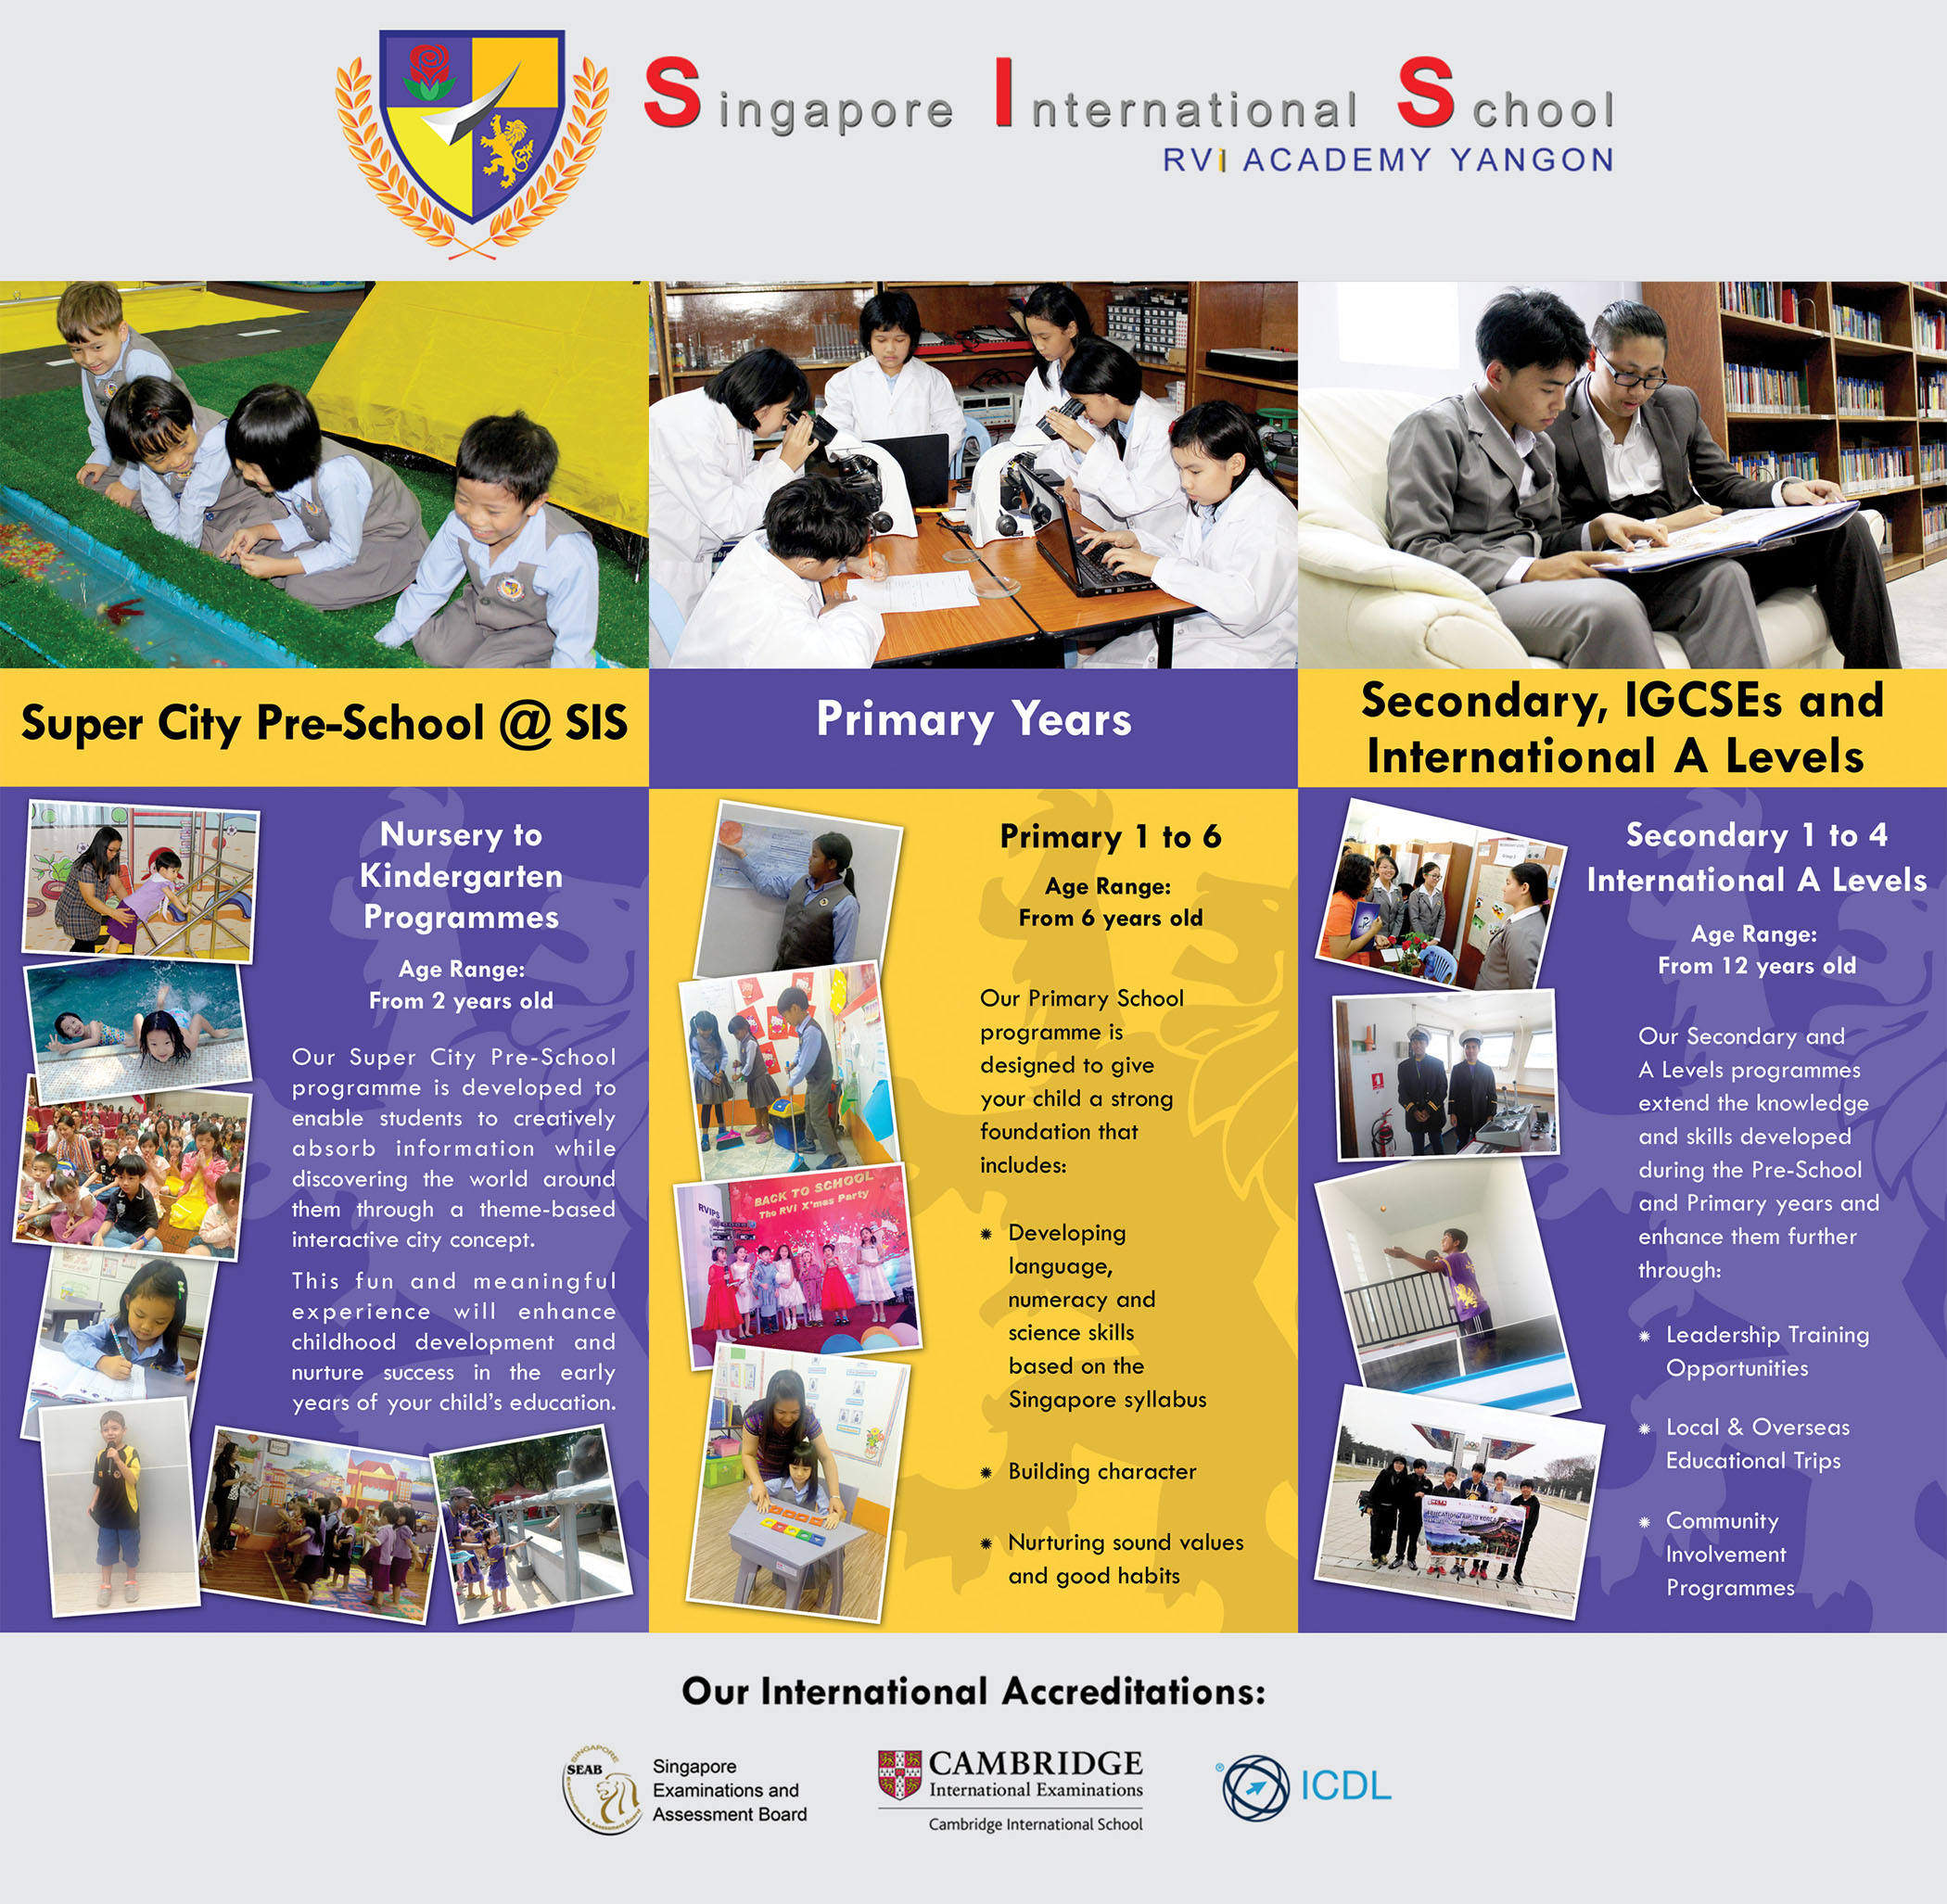 Singapore International School : RVi Academy Yangon